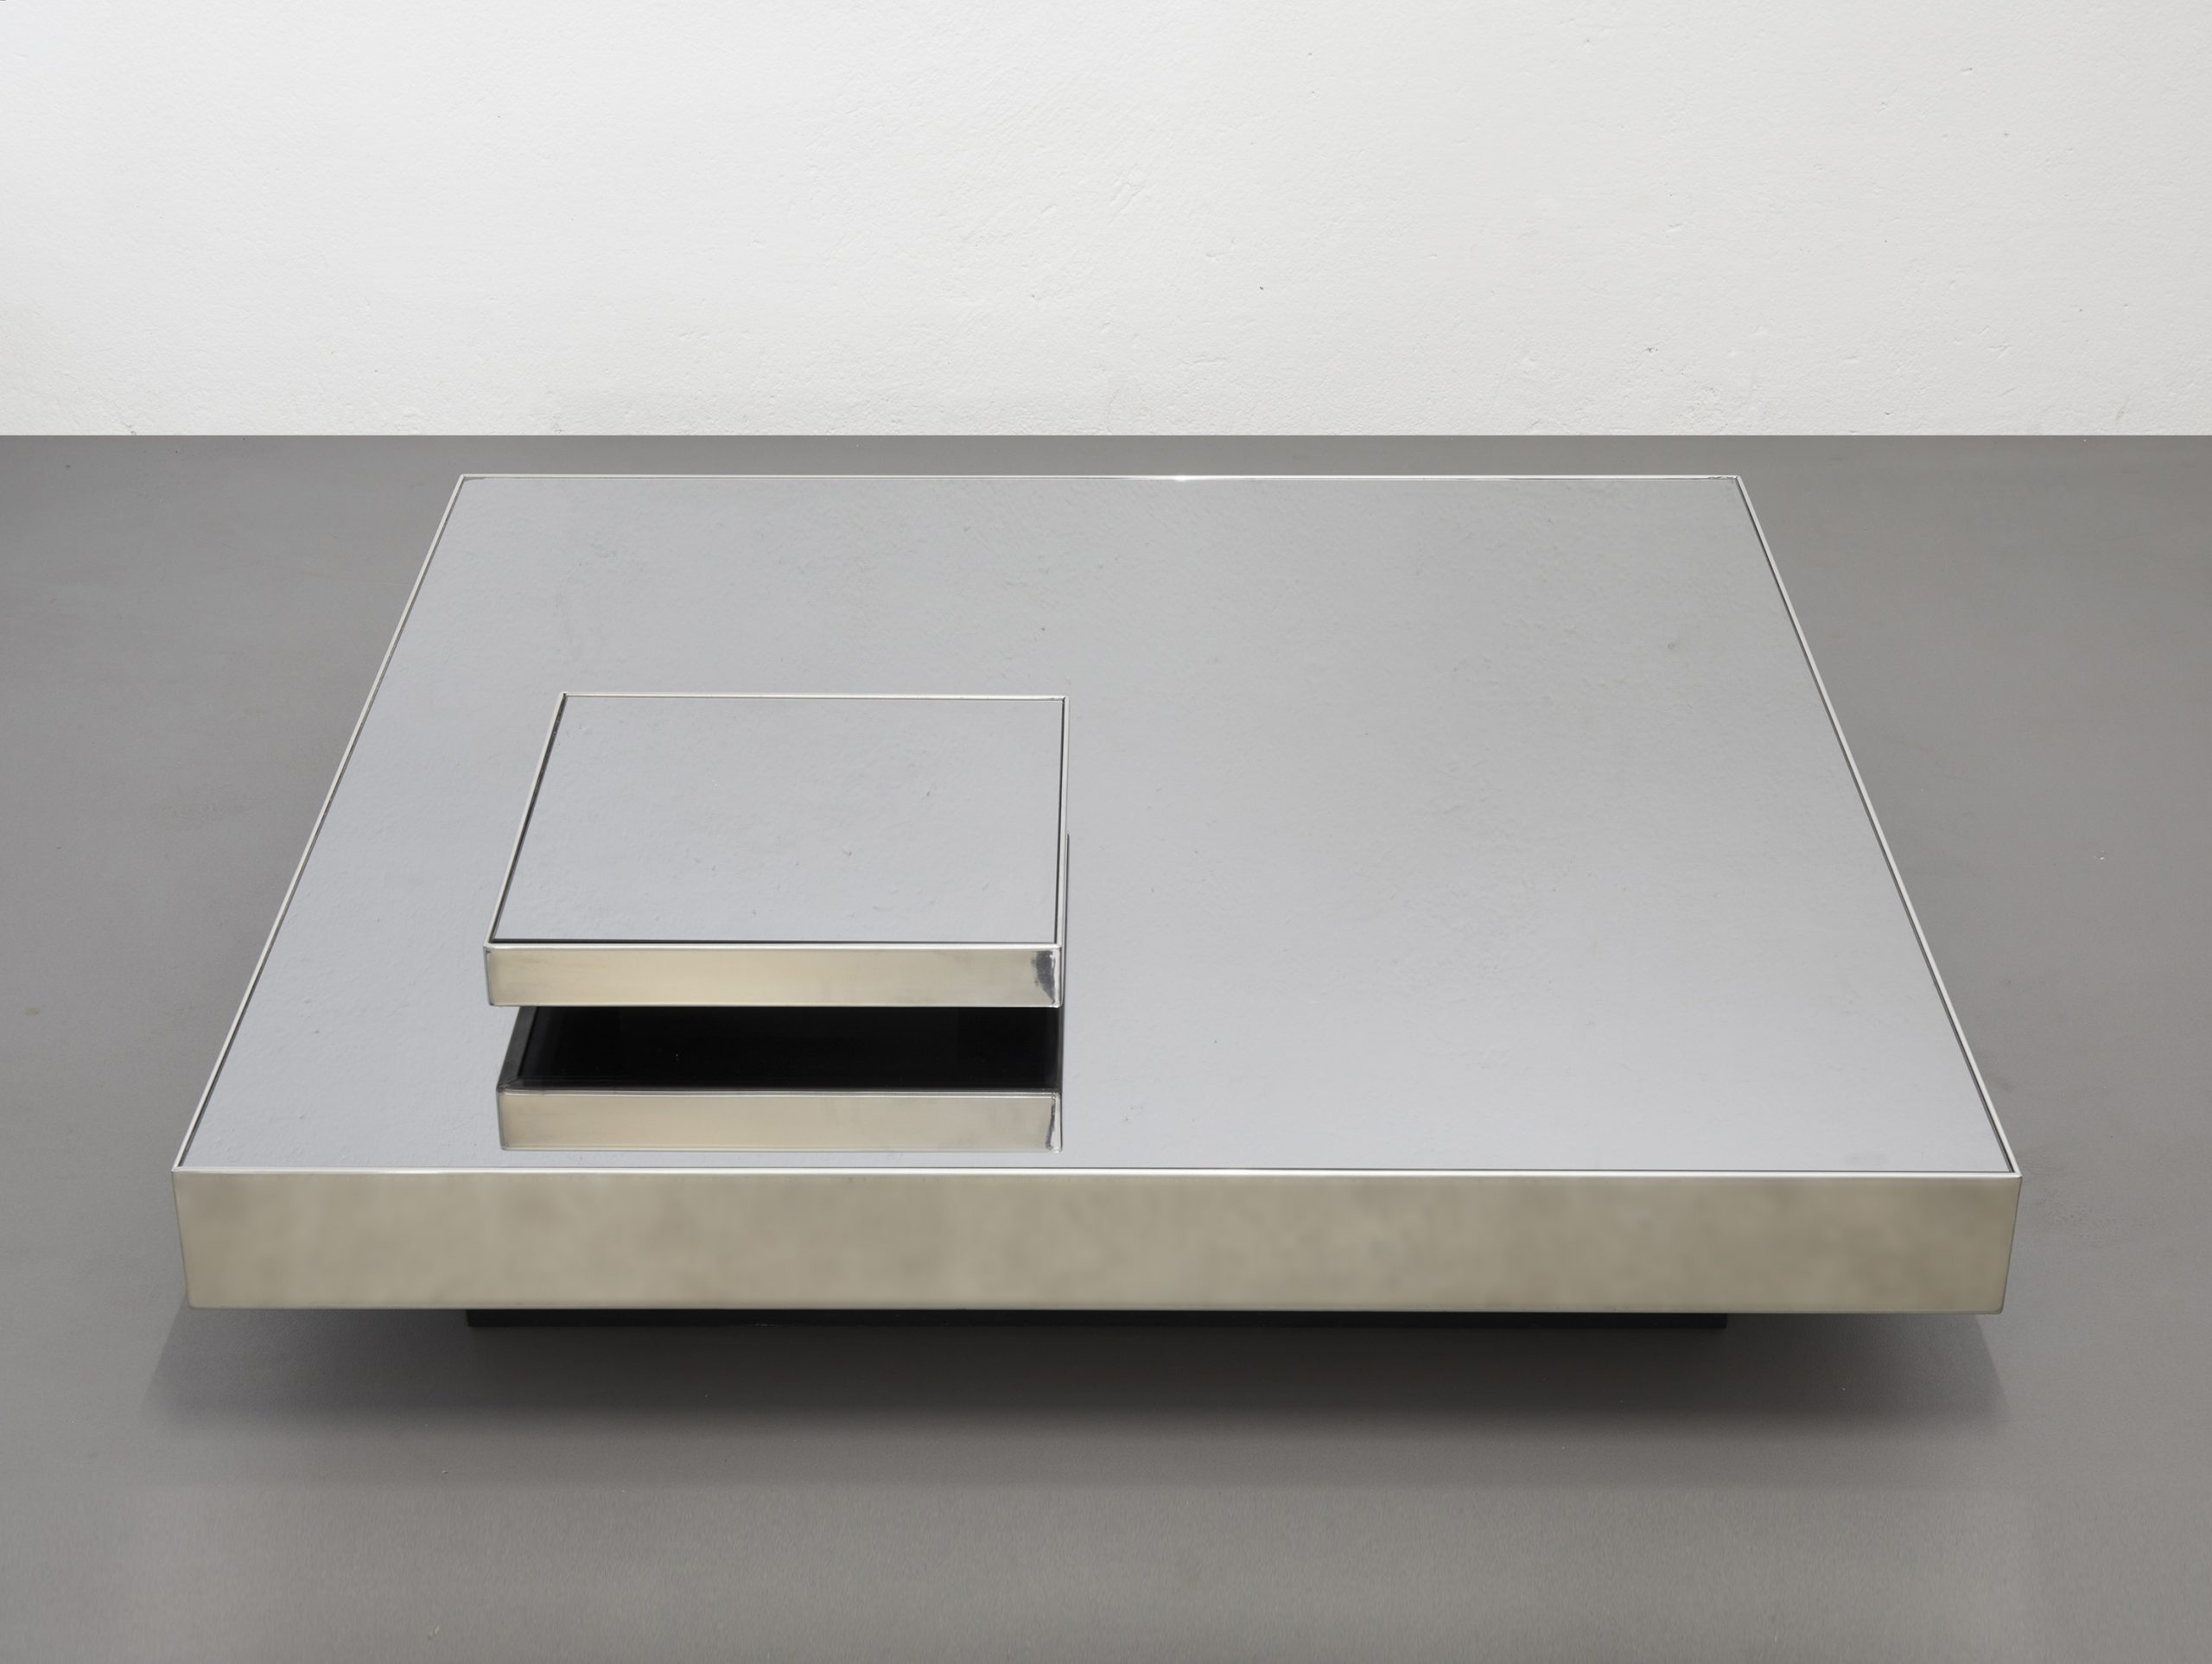 square-coffee-table-by-giovanni-ausenda-ny-form-1970-image-03